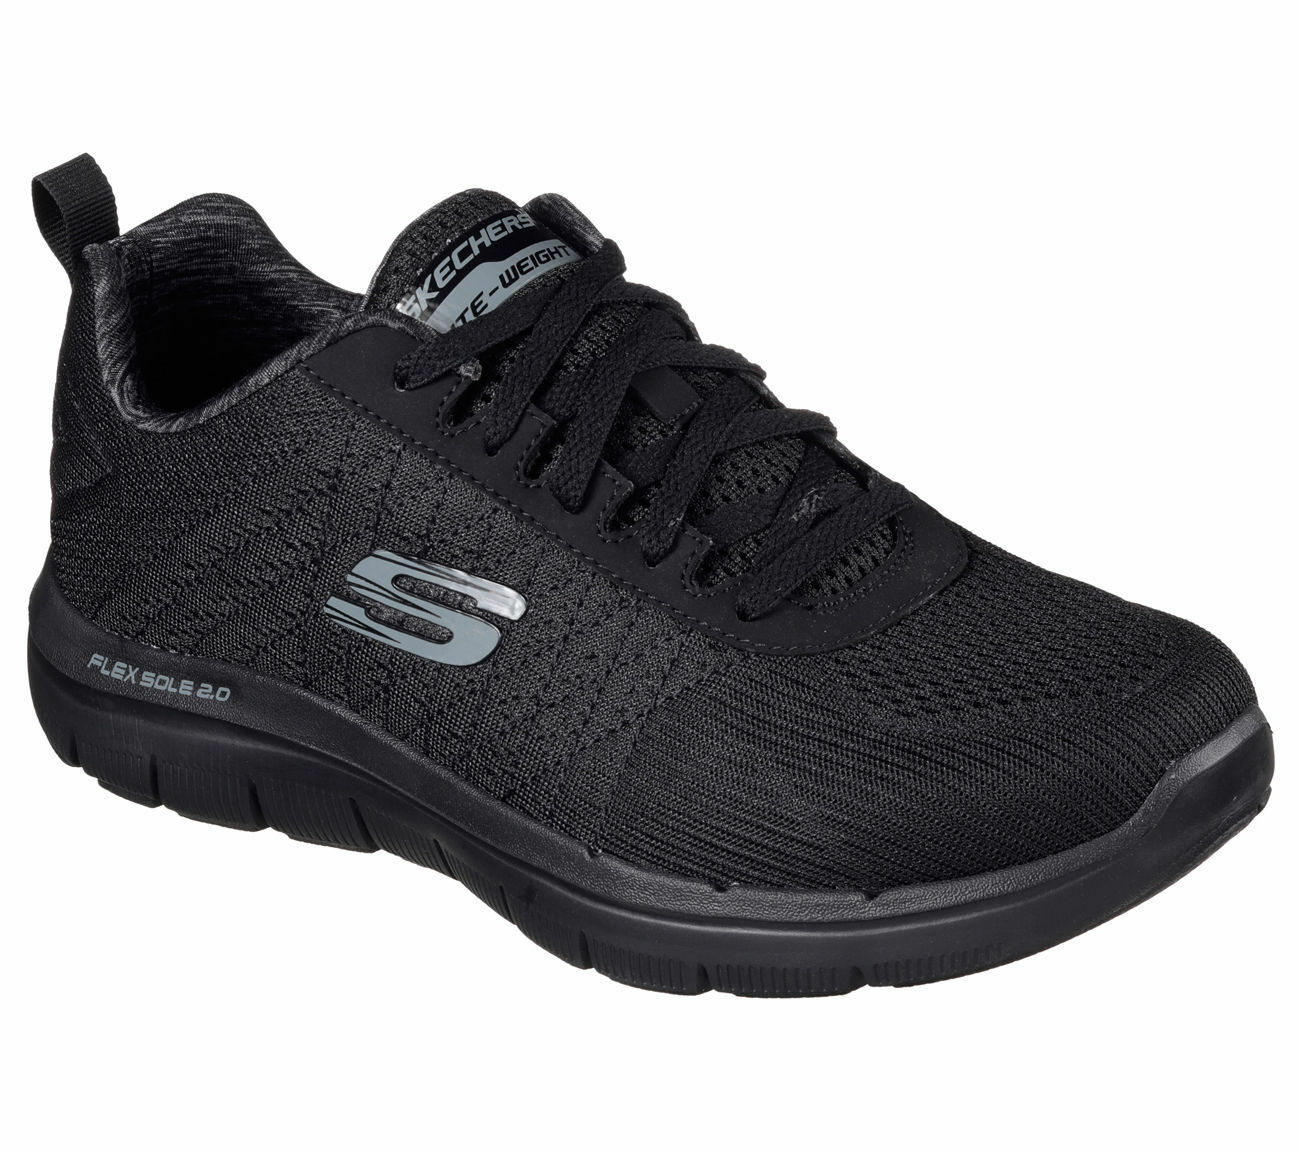 52185 Black W Wide Fit Skechers Shoes Men Memory Foam Sport Run Train Mesh Light